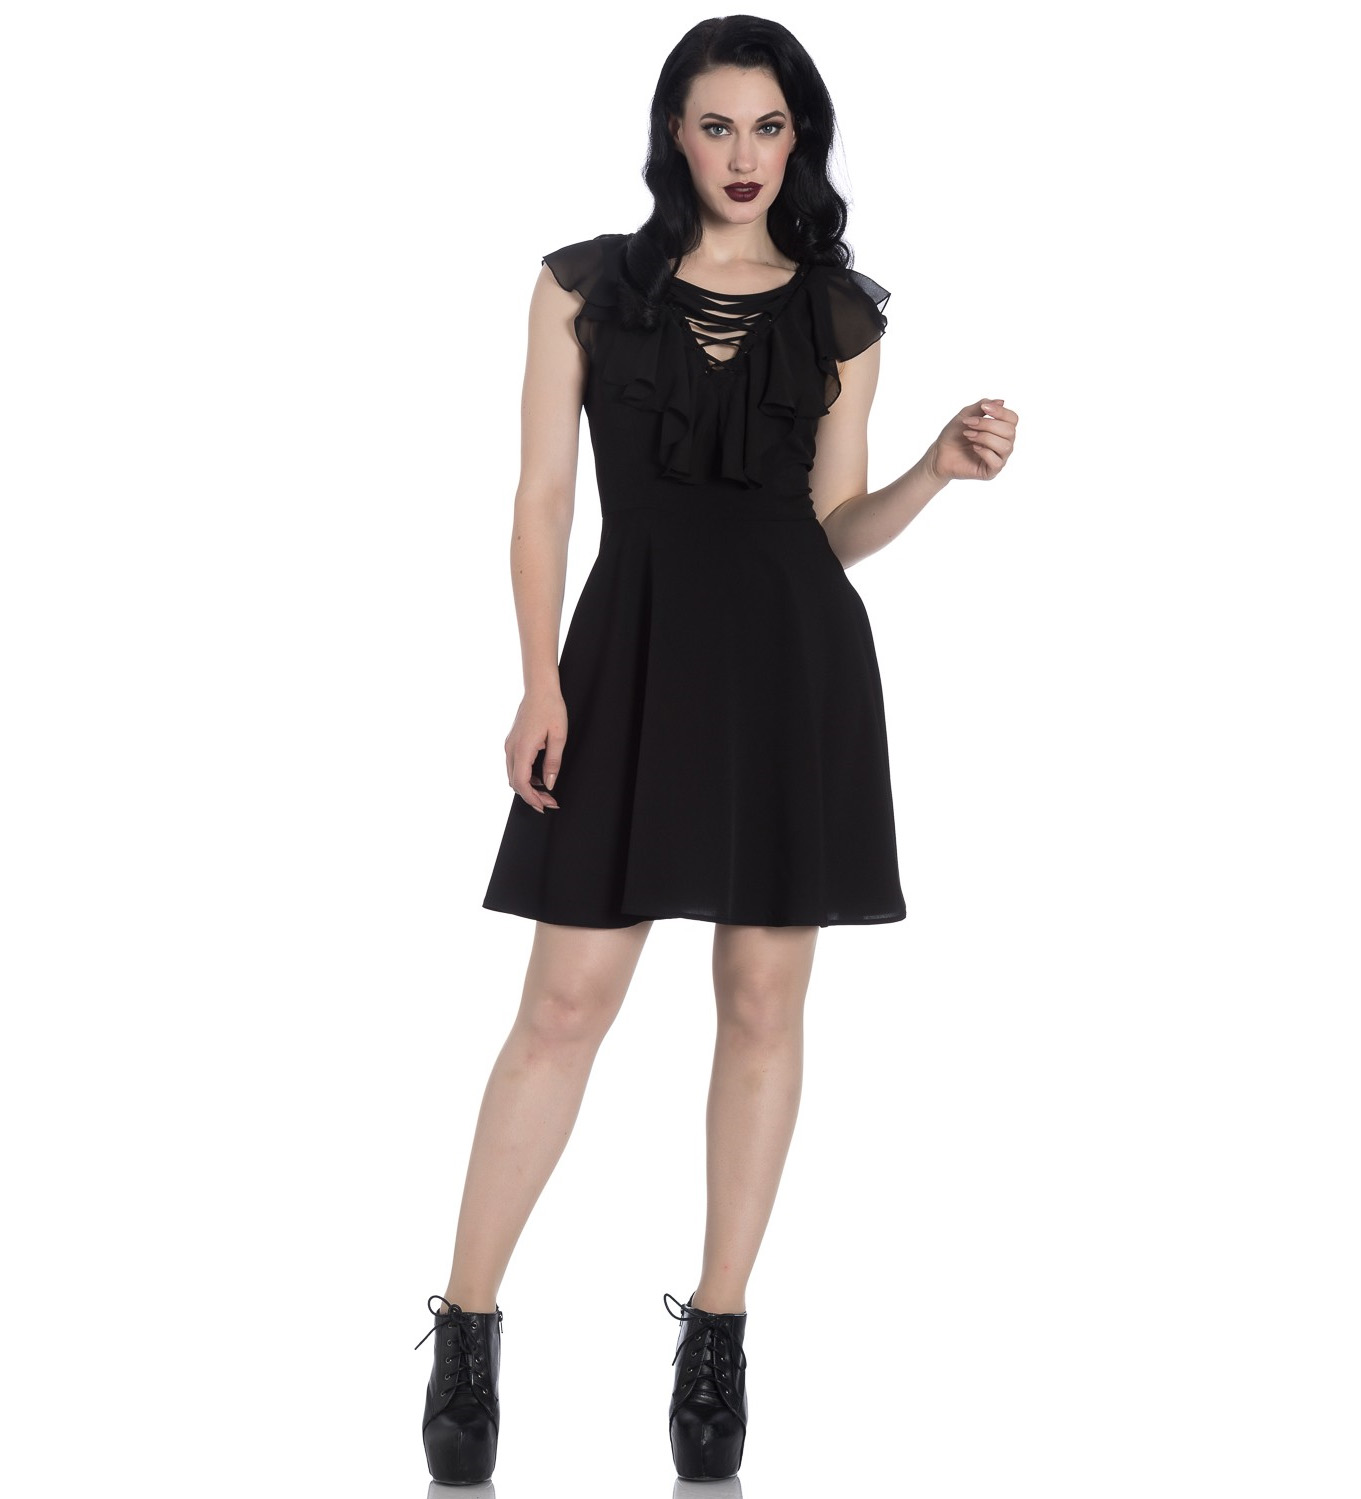 Hell-Bunny-Floaty-Lace-Up-Goth-Witch-Punk-Mini-Dress-ONYX-Black-All-Sizes thumbnail 45